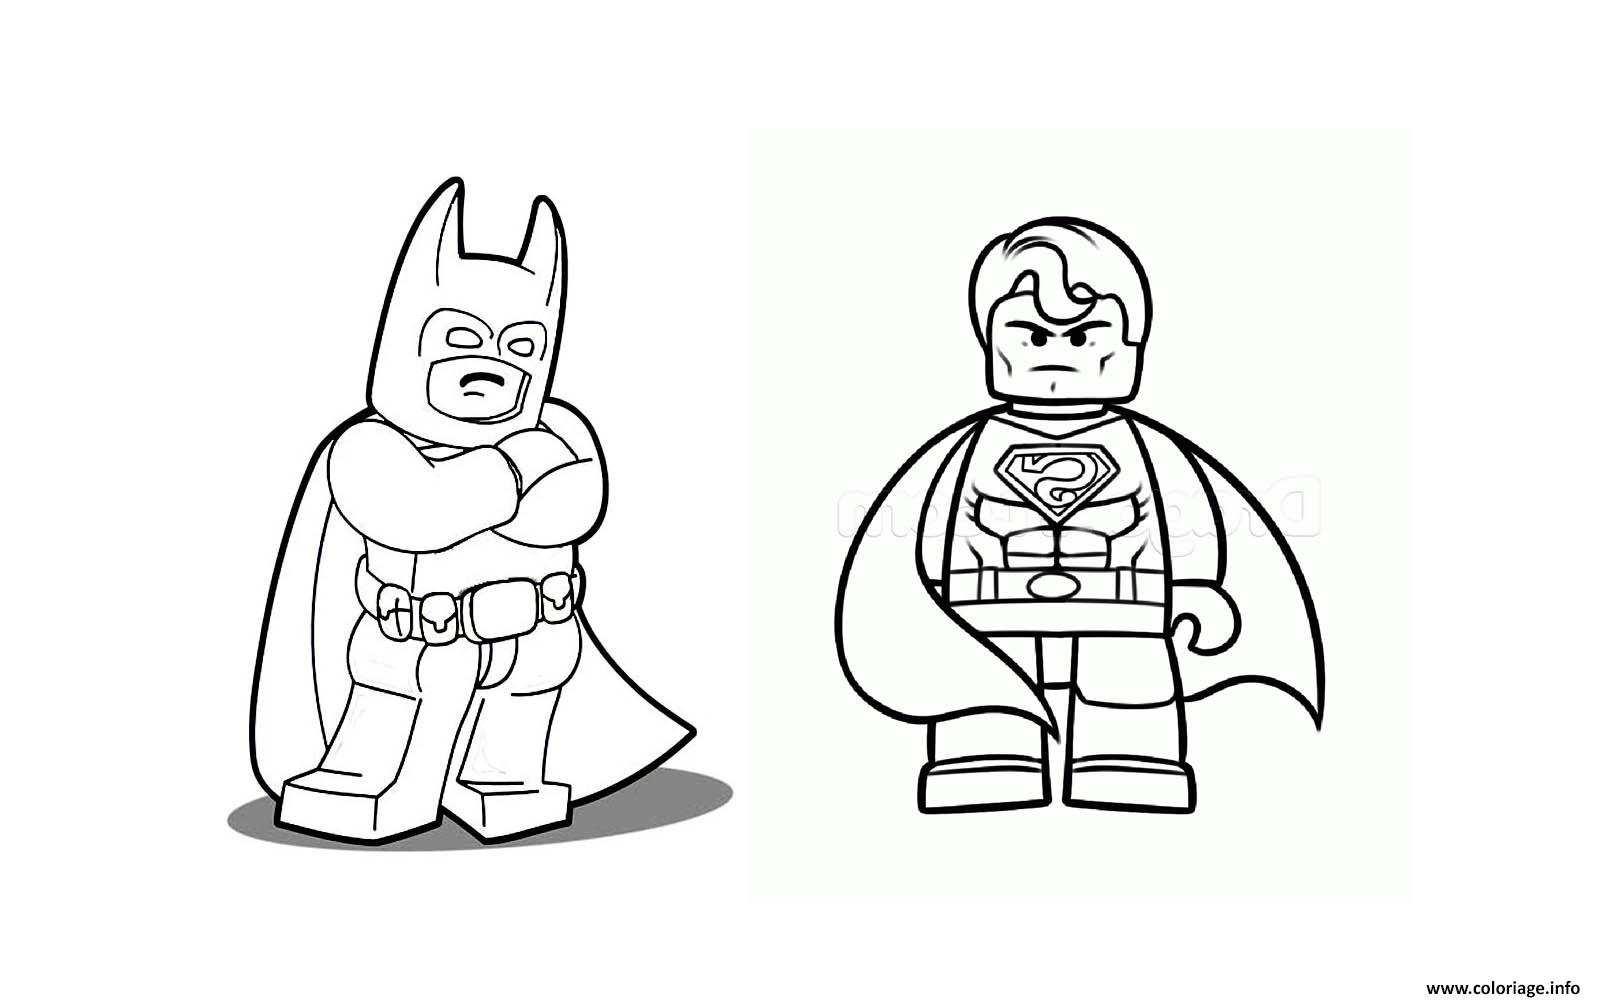 Coloriage Batman Et Superman A Imprimer.Coloriage Batman Vs Superman Lego 2016 Jecolorie Com